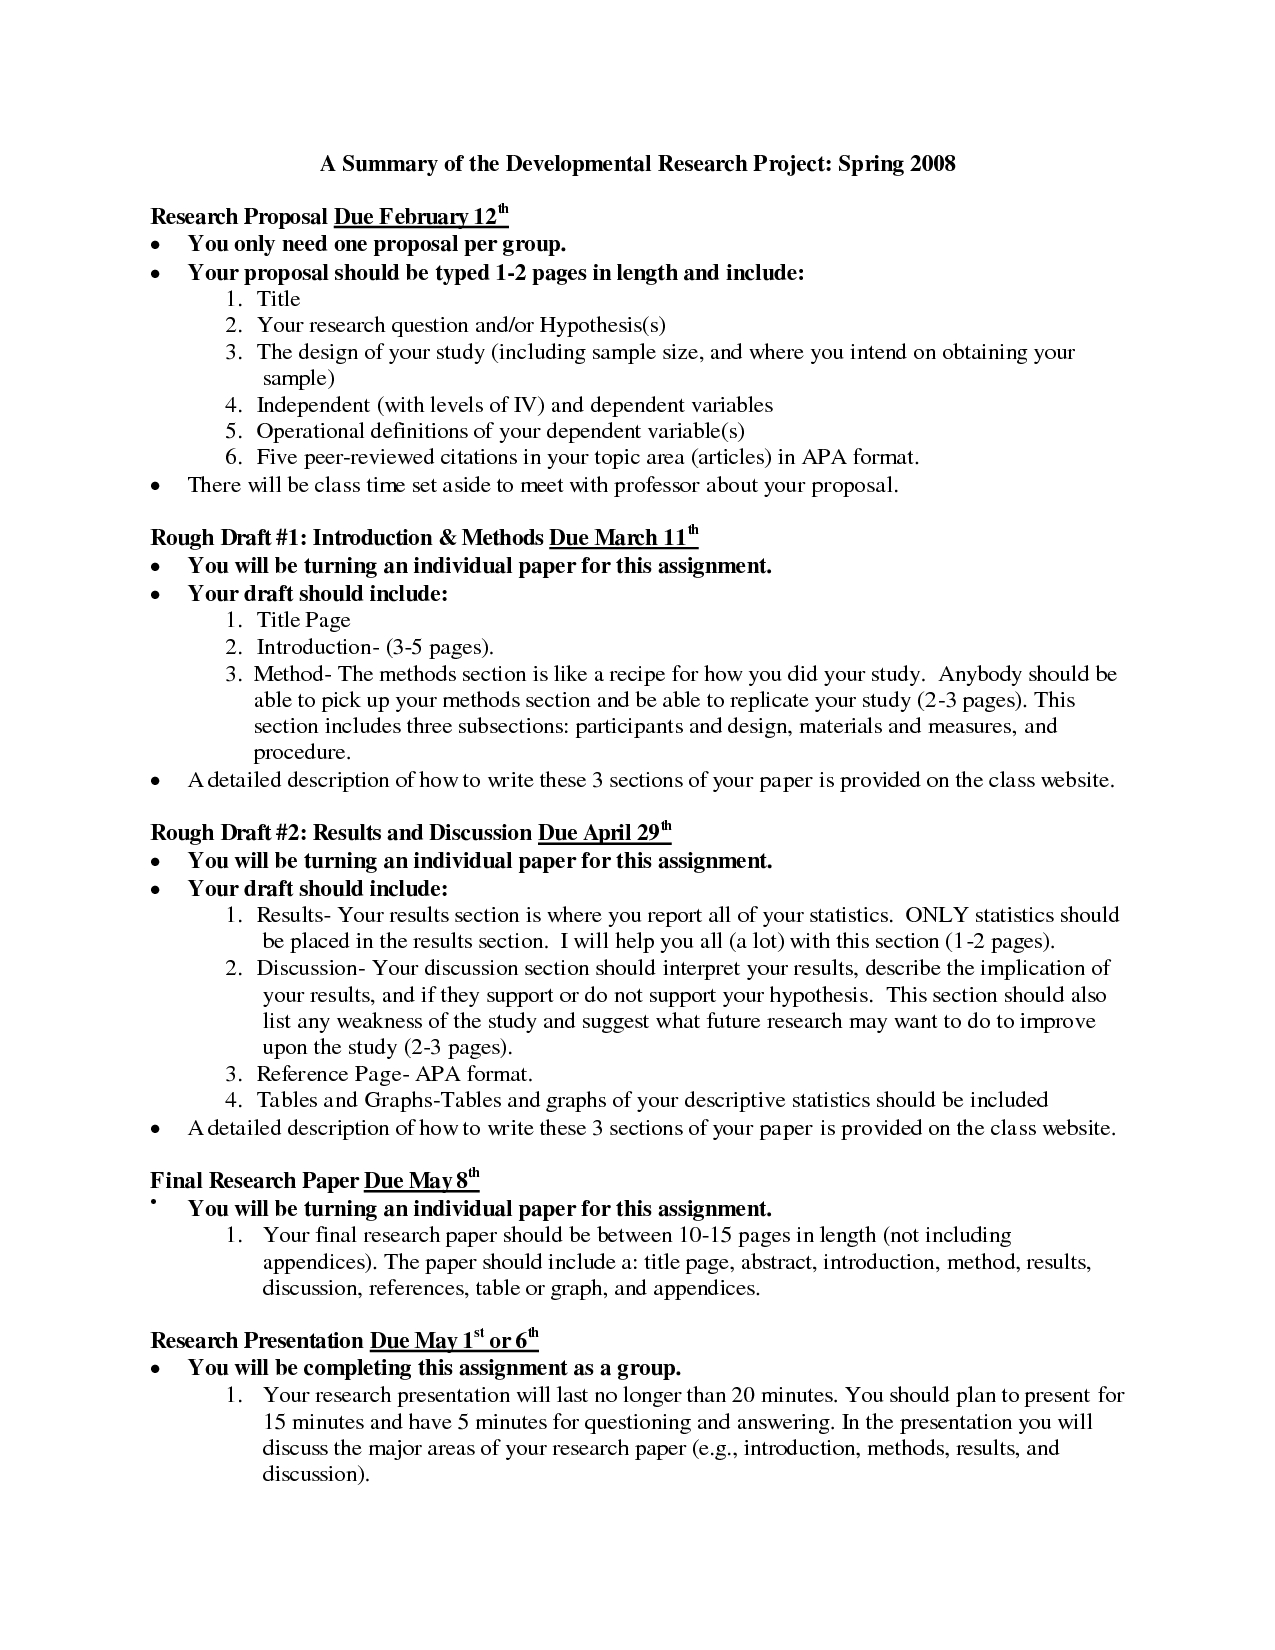 009 Good Topics For Researchs Psychology Undergraduate Resume Unique Sample Of Awesome Research Papers Middle School Economic Paper Interesting In The Philippines Full